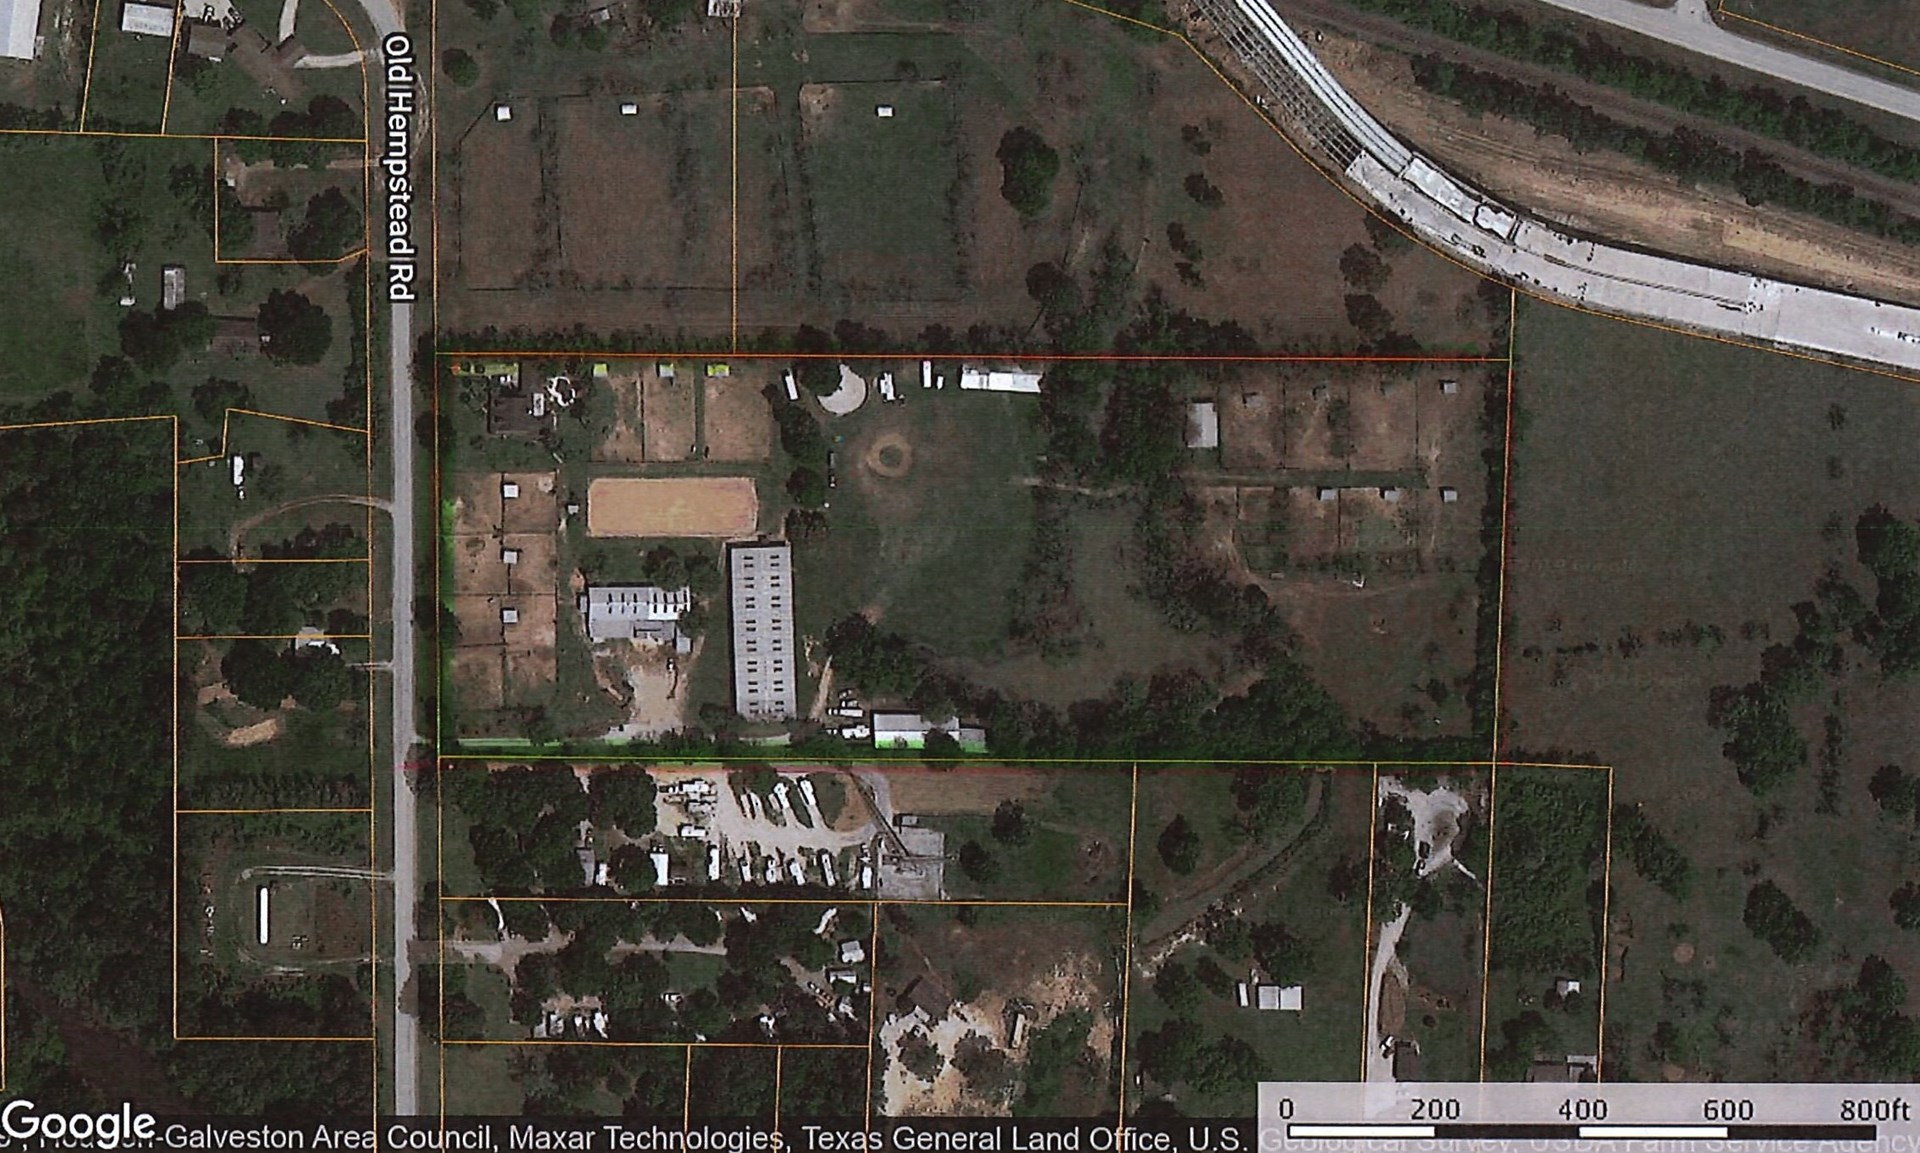 12 ACRES FOR SALE COMMERCIAL DEVELOPMENT LAND MAGNOLIA TEXAS